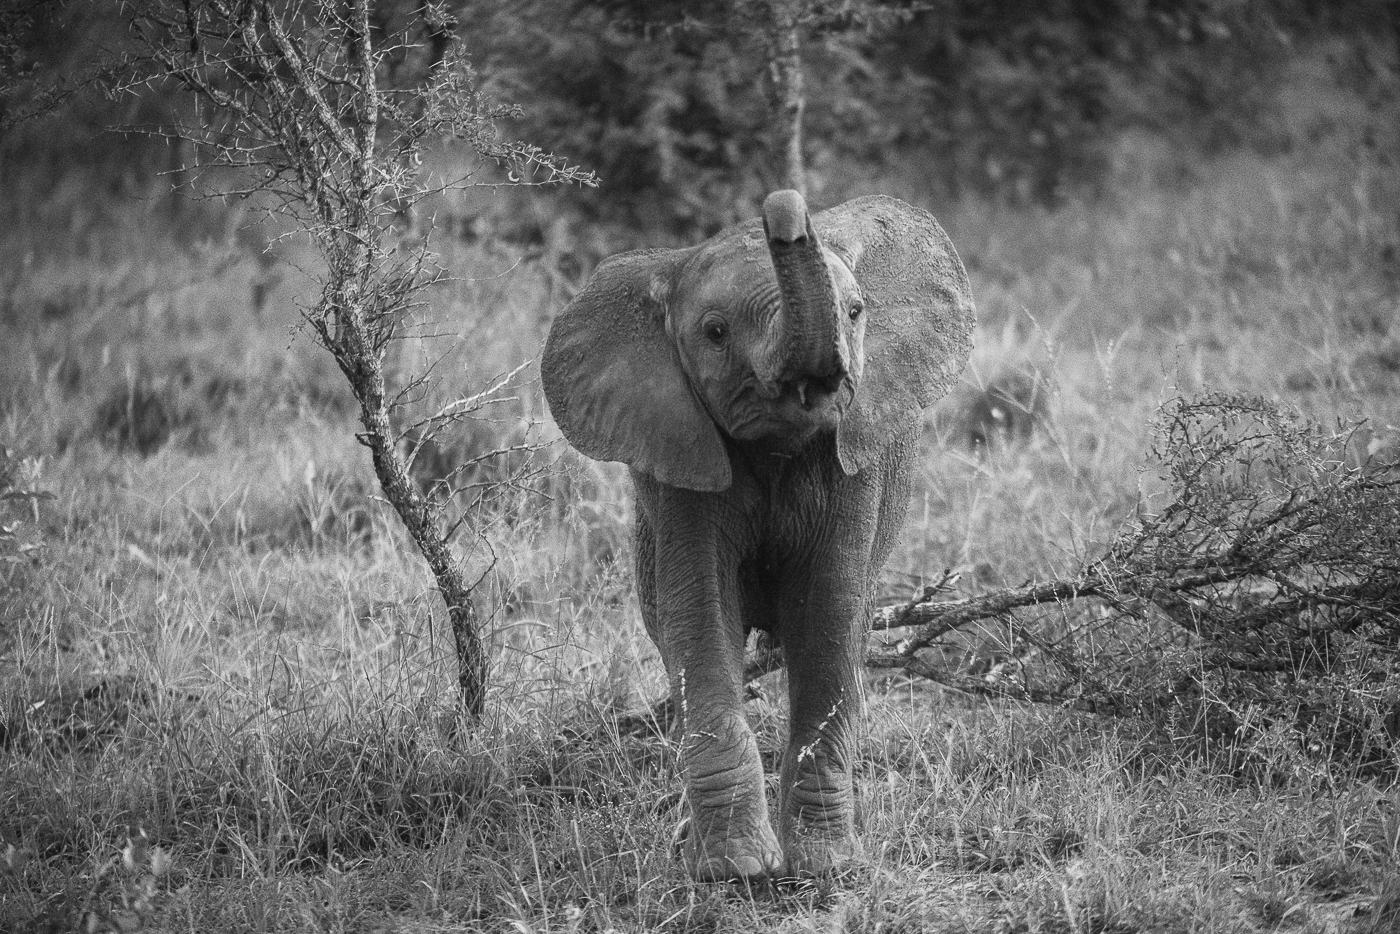 Elephant calf trunk up